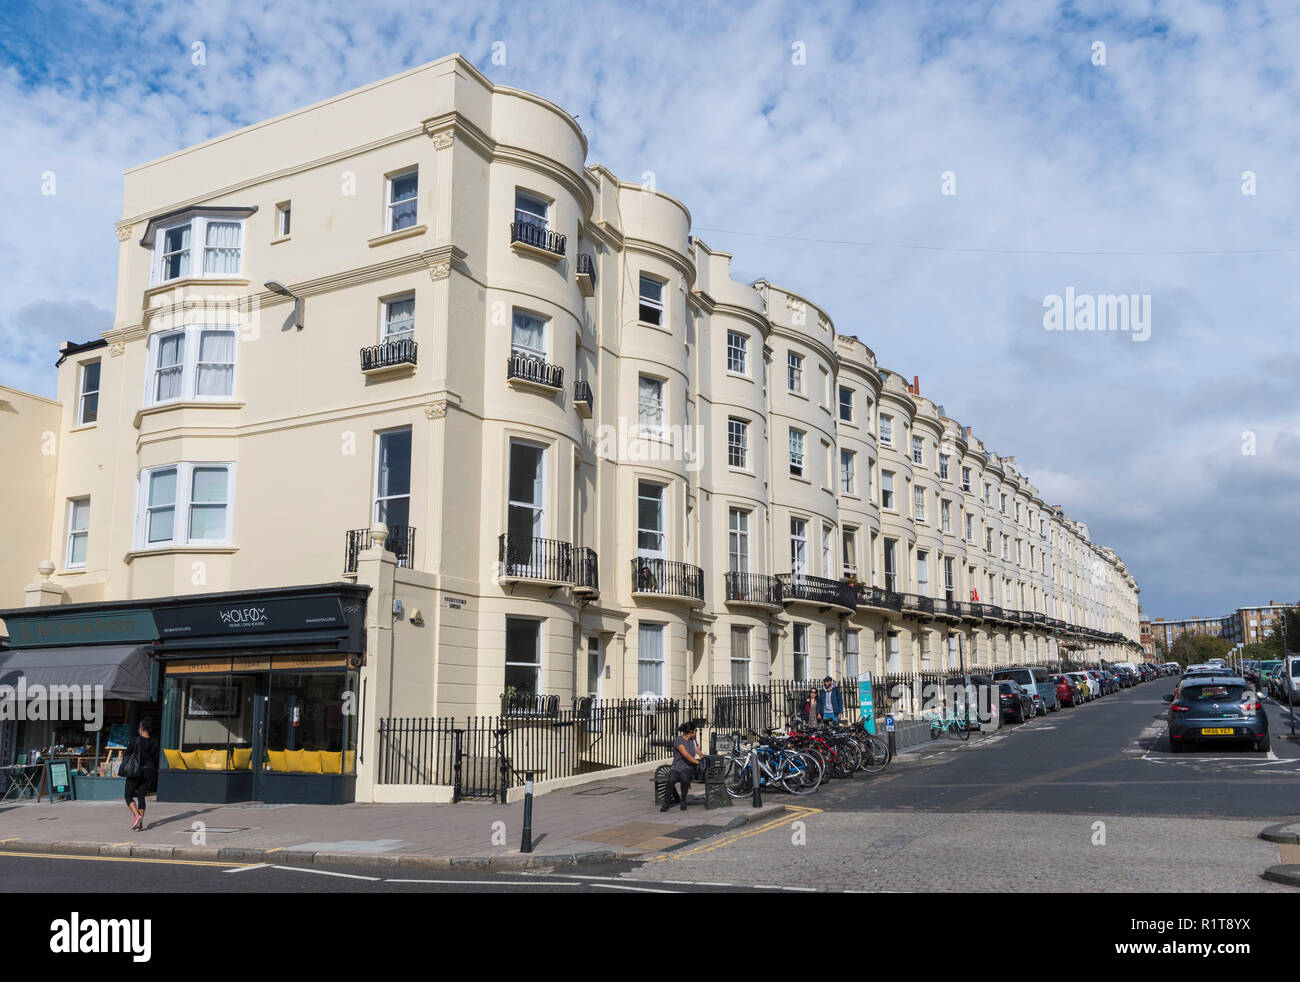 Terraced flats along Brunswick Place, built in Regency architecture style in Hove, East Sussex, England, UK. - Stock Image